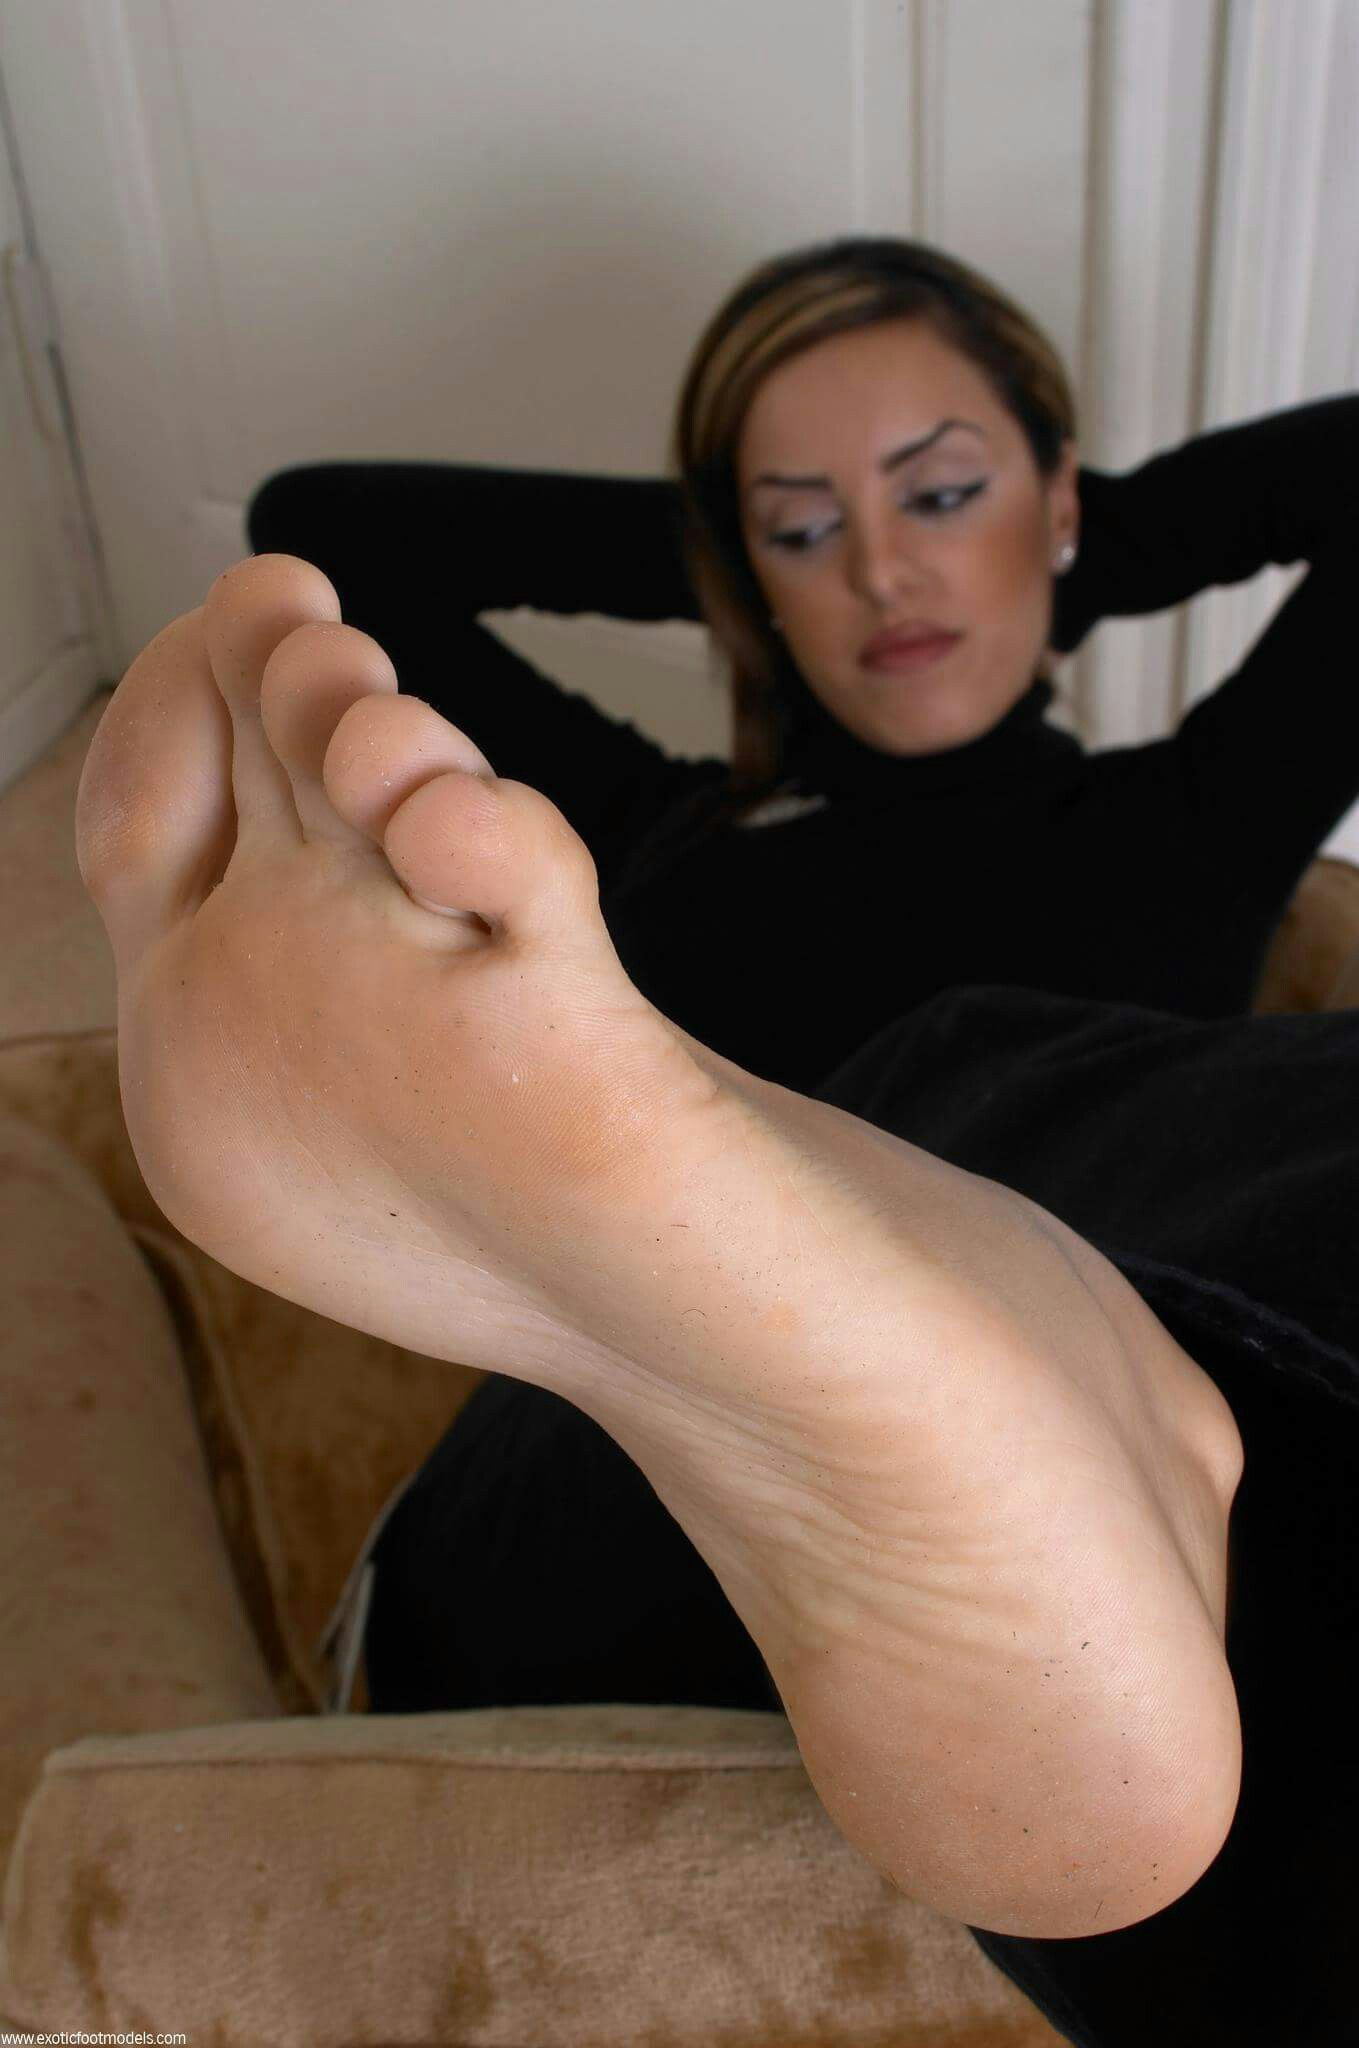 i want to be a foot slave